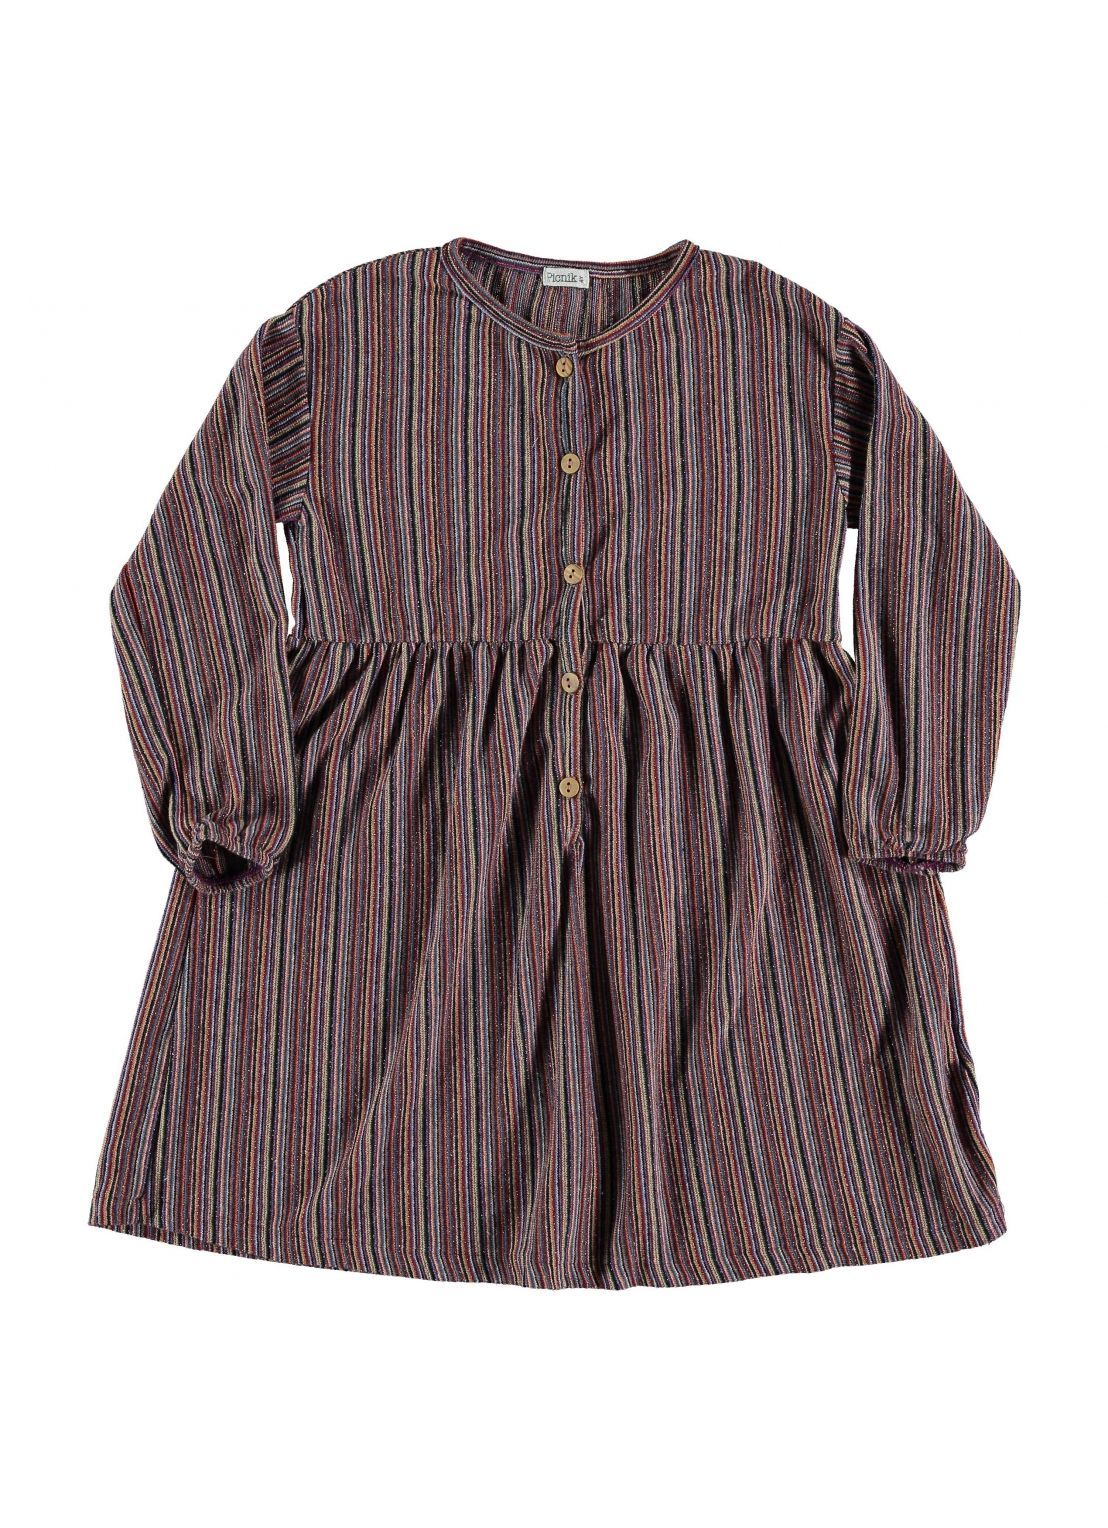 Kid  DRESS Girl- 50 % CO, 36 PAC, 6 % ME, 4 % OF, 4% EA- knitted